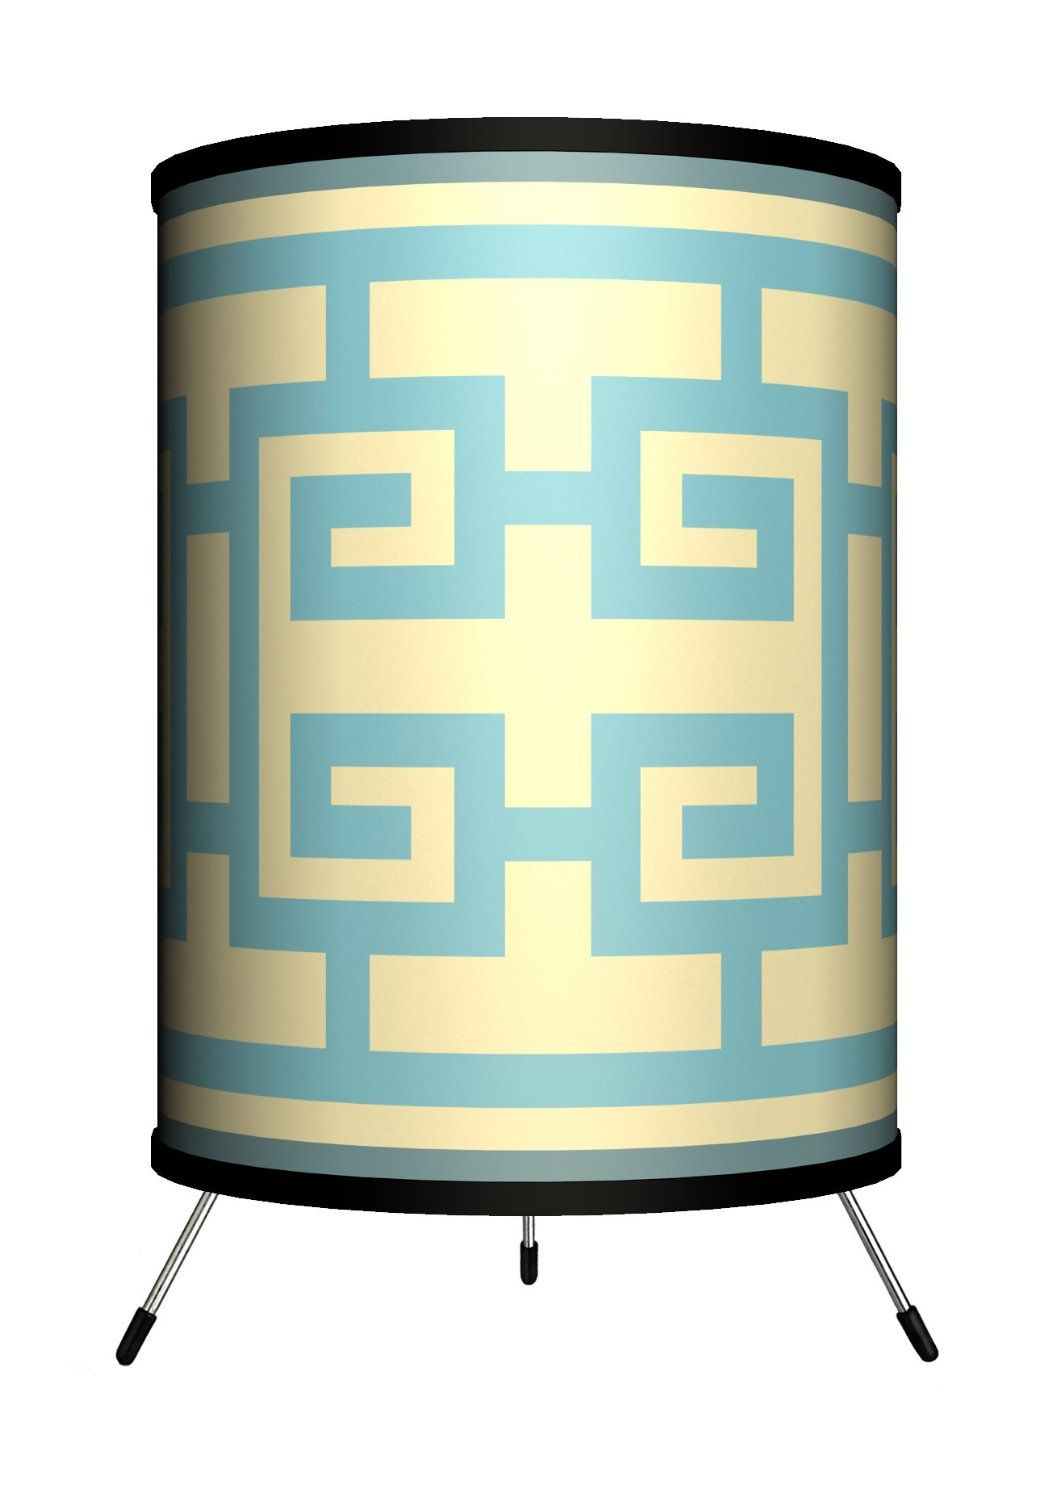 Another cute one. http://www.amazon.com/Lamp-In-A-Box-TRI-DEC-PT005-D%C3%A9cor-Art-Pattern/dp/B00B19907I/ref=sr_1_3?s=hi&ie=UTF8&qid=1391641490&sr=1-3&keywords=lamp+in+a+box+art